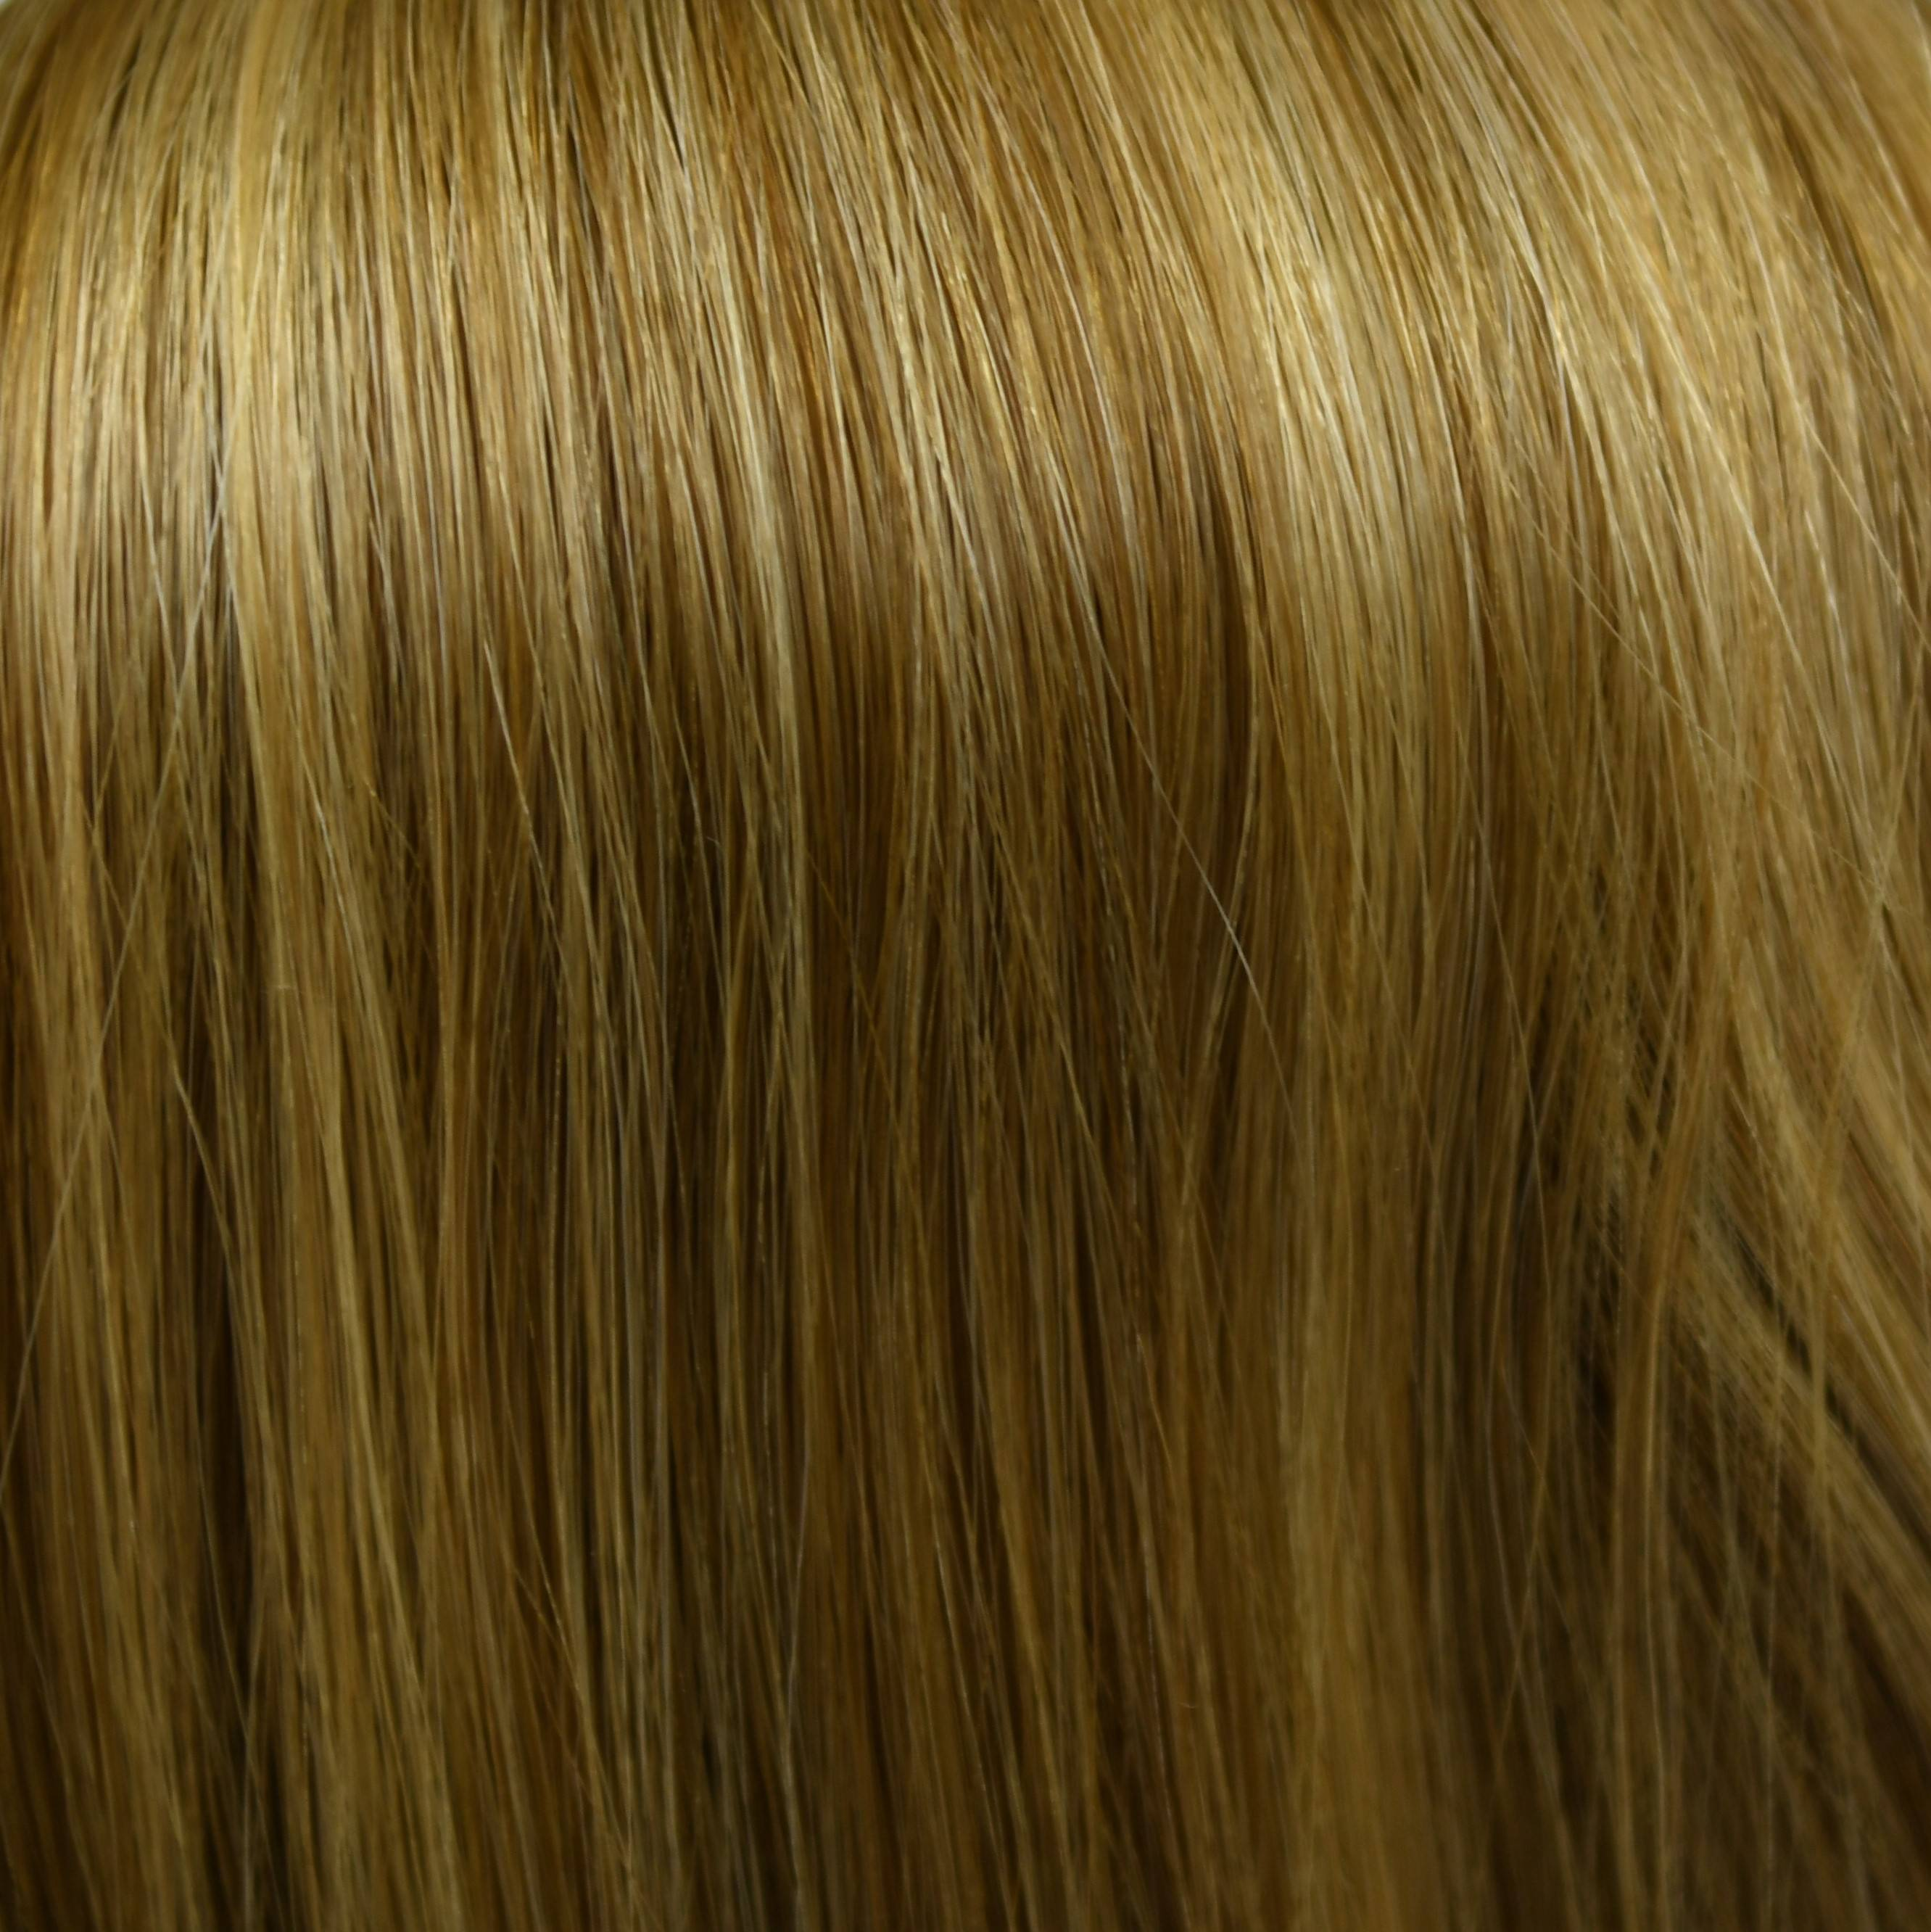 natural Blonde color hair help to choose hair extensions color in hair color chart